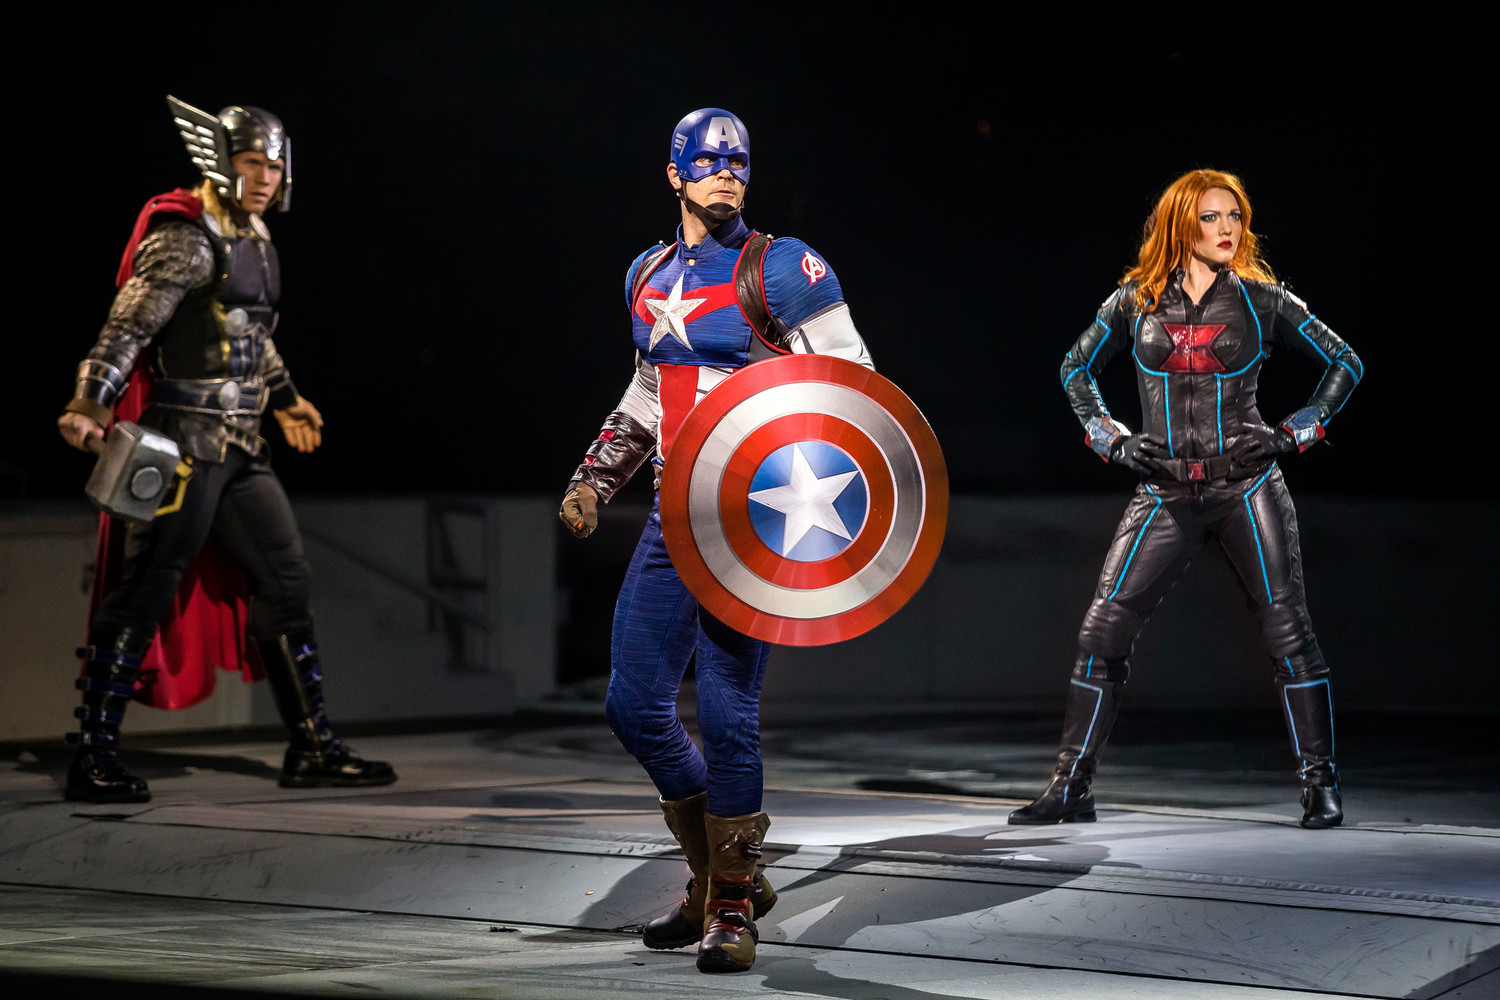 Captain America Thor and Black Widow are ready for action.